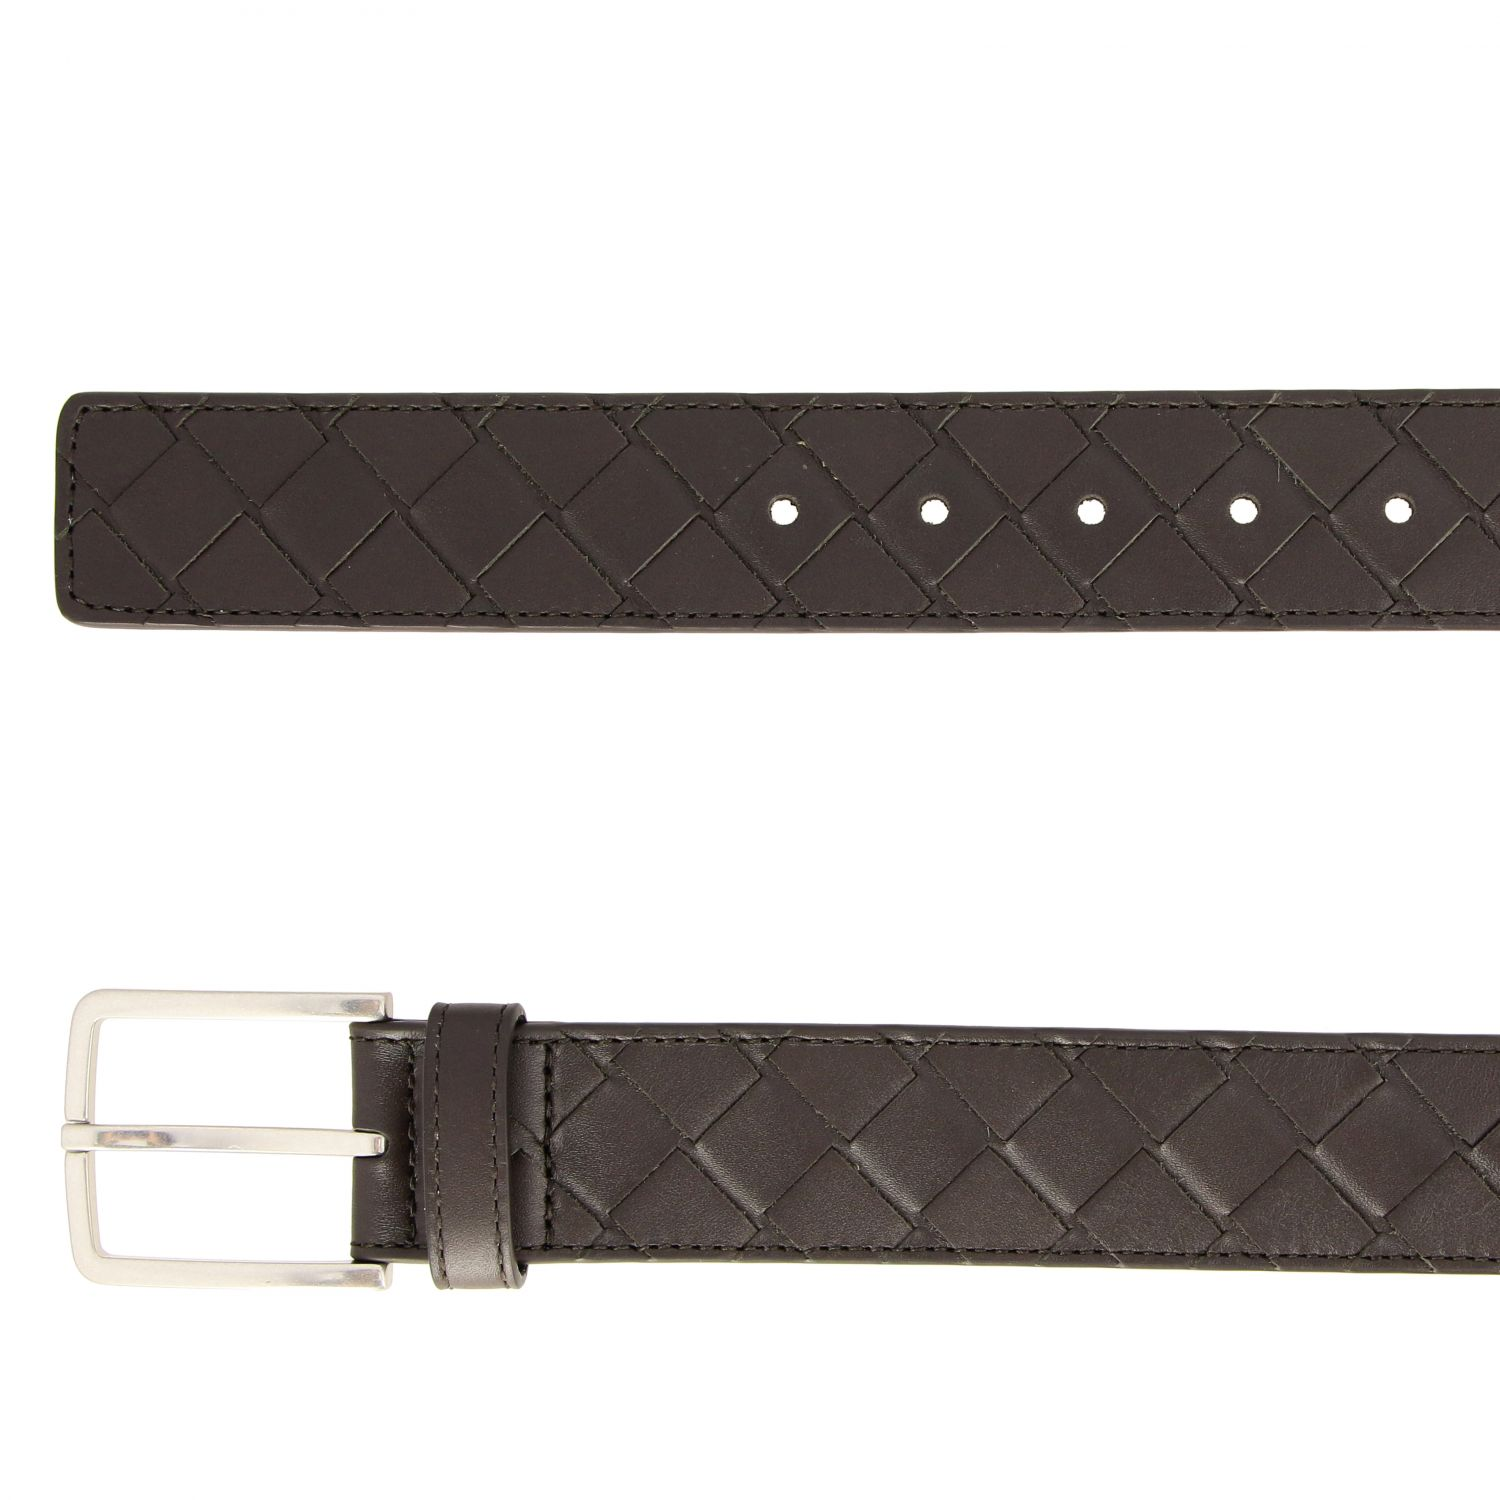 Belt Bottega Veneta: Bottega Veneta belt in woven leather brown 2